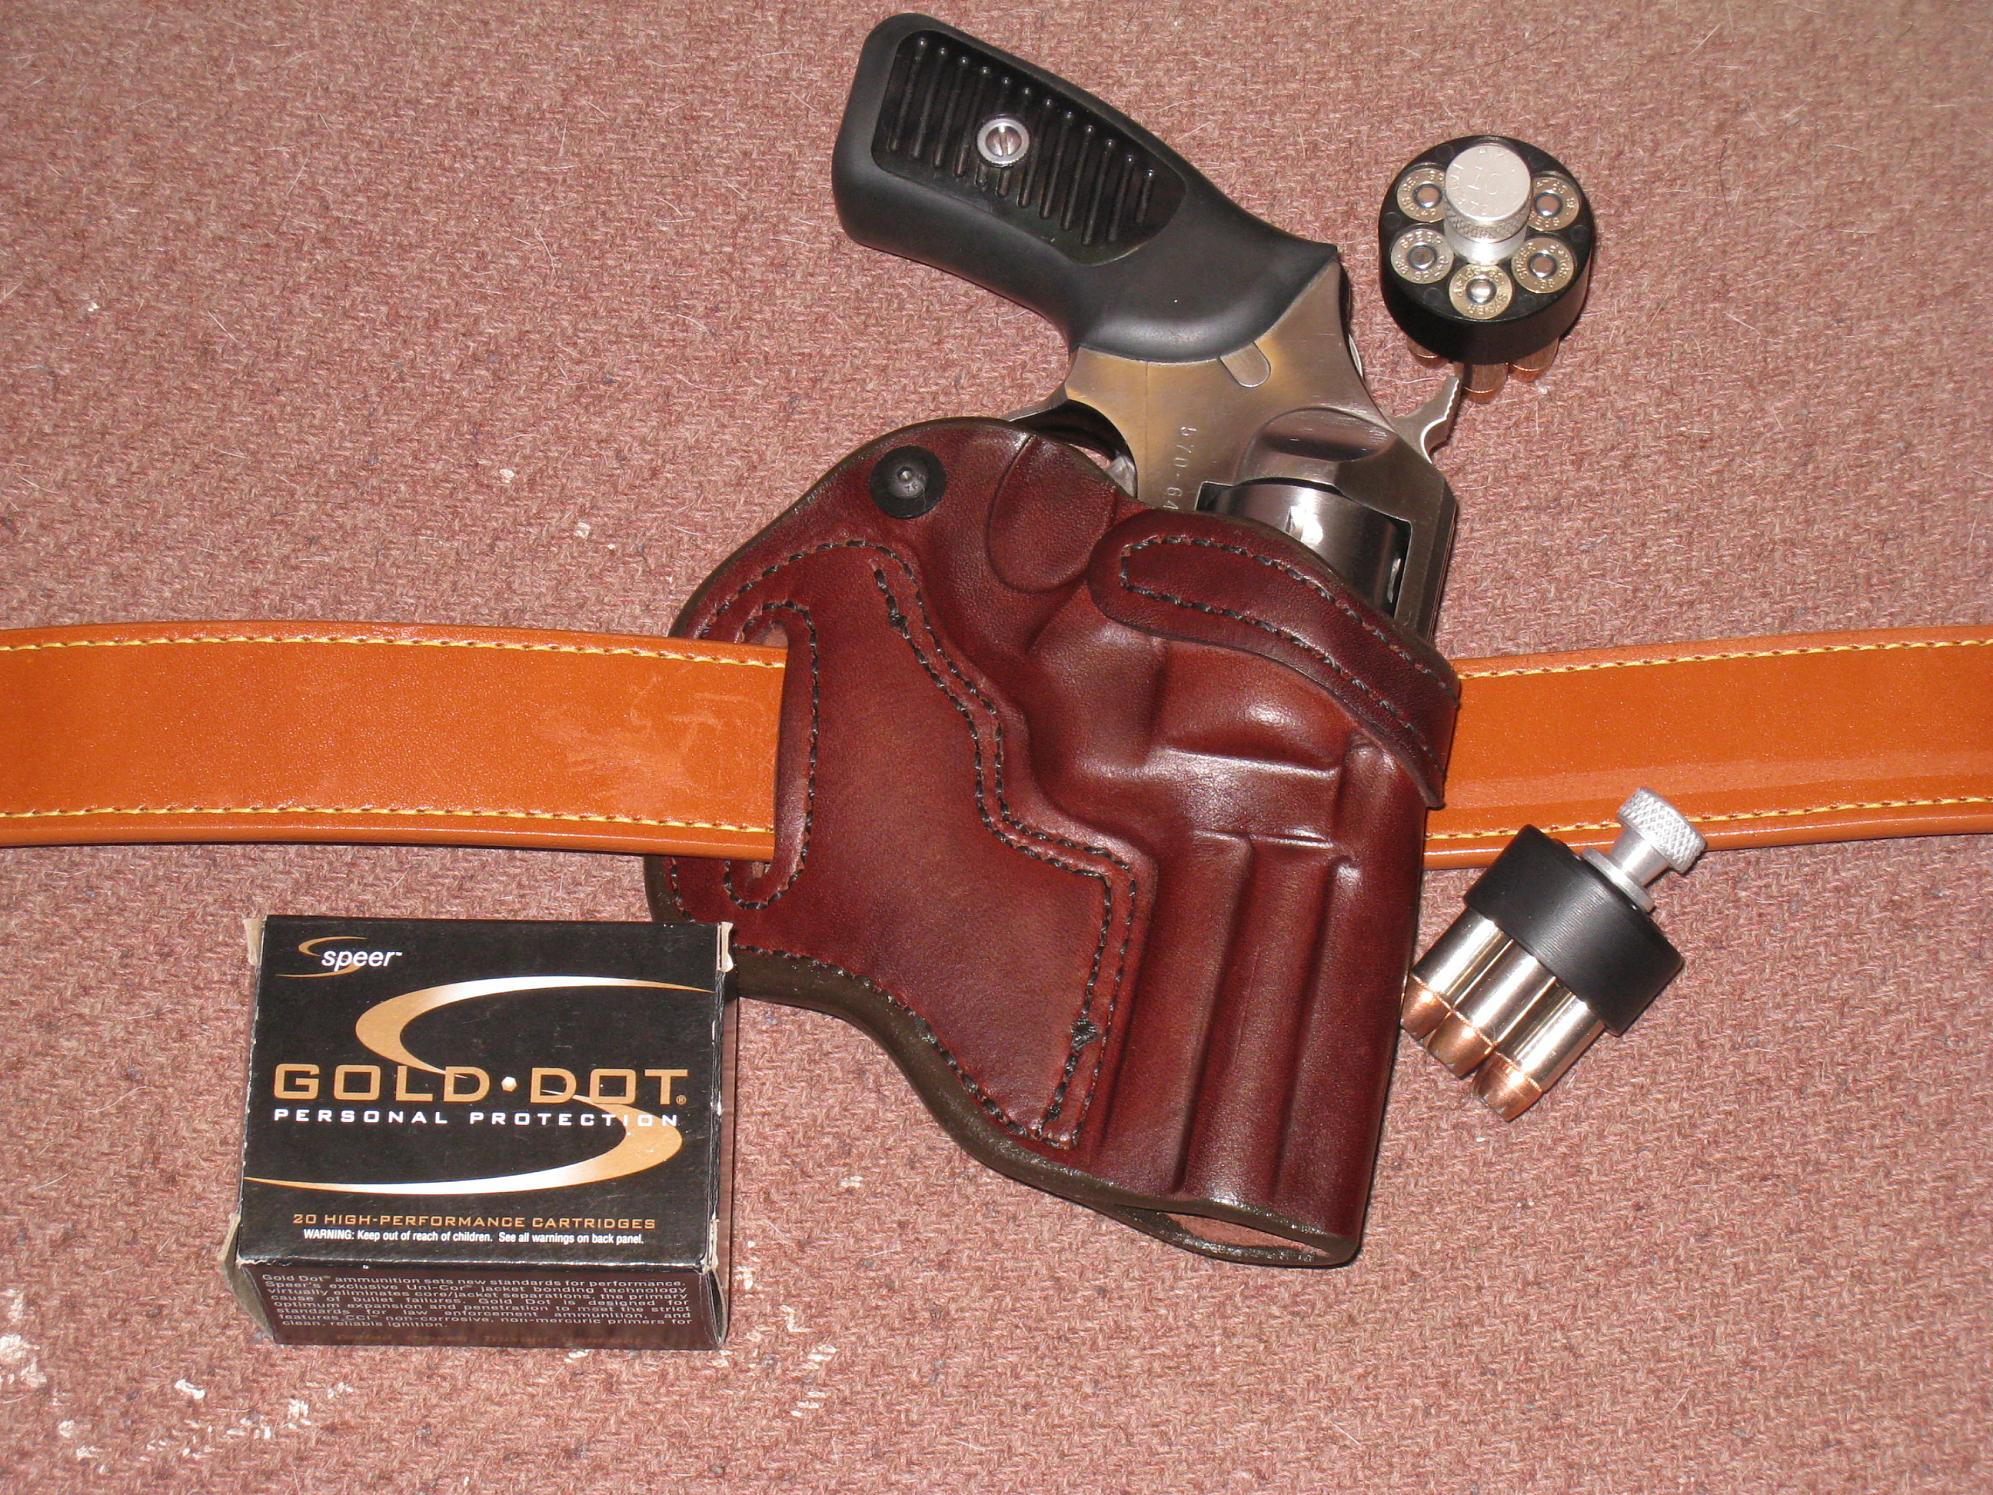 Looking for holsters for SP-101 and MKII-img_0280.jpg